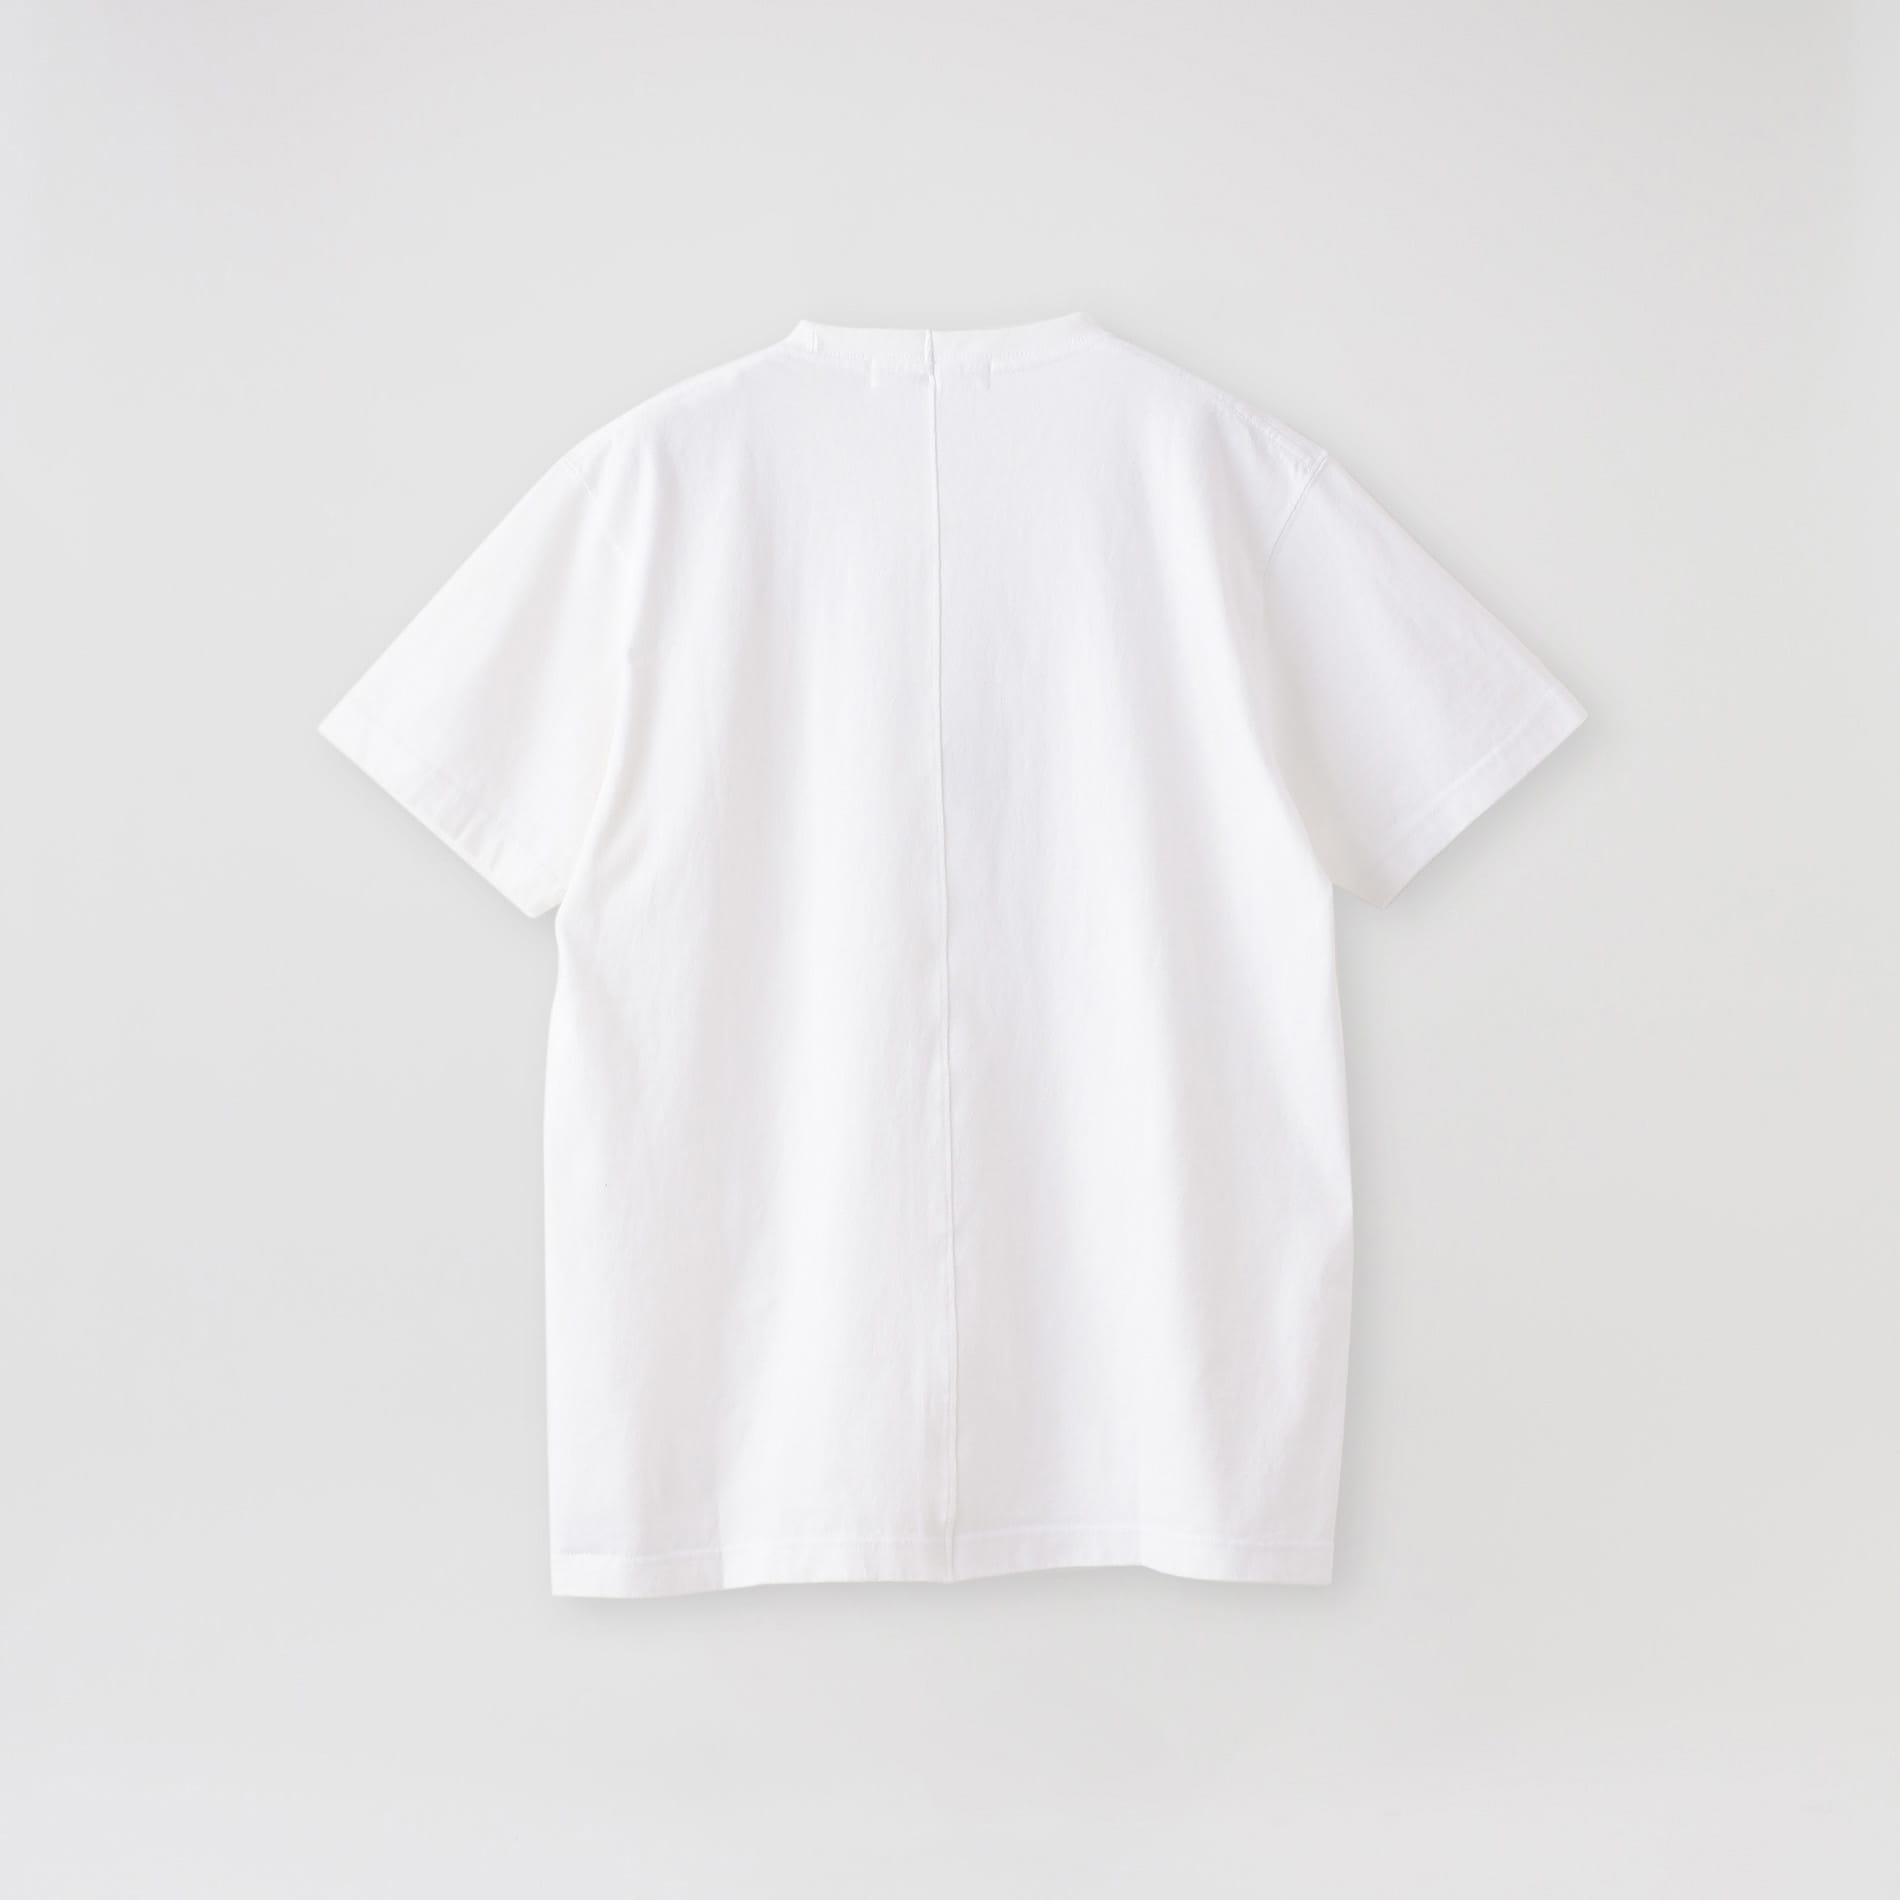 【south for F 17-6】MEN Tシャツ 19AWF-09